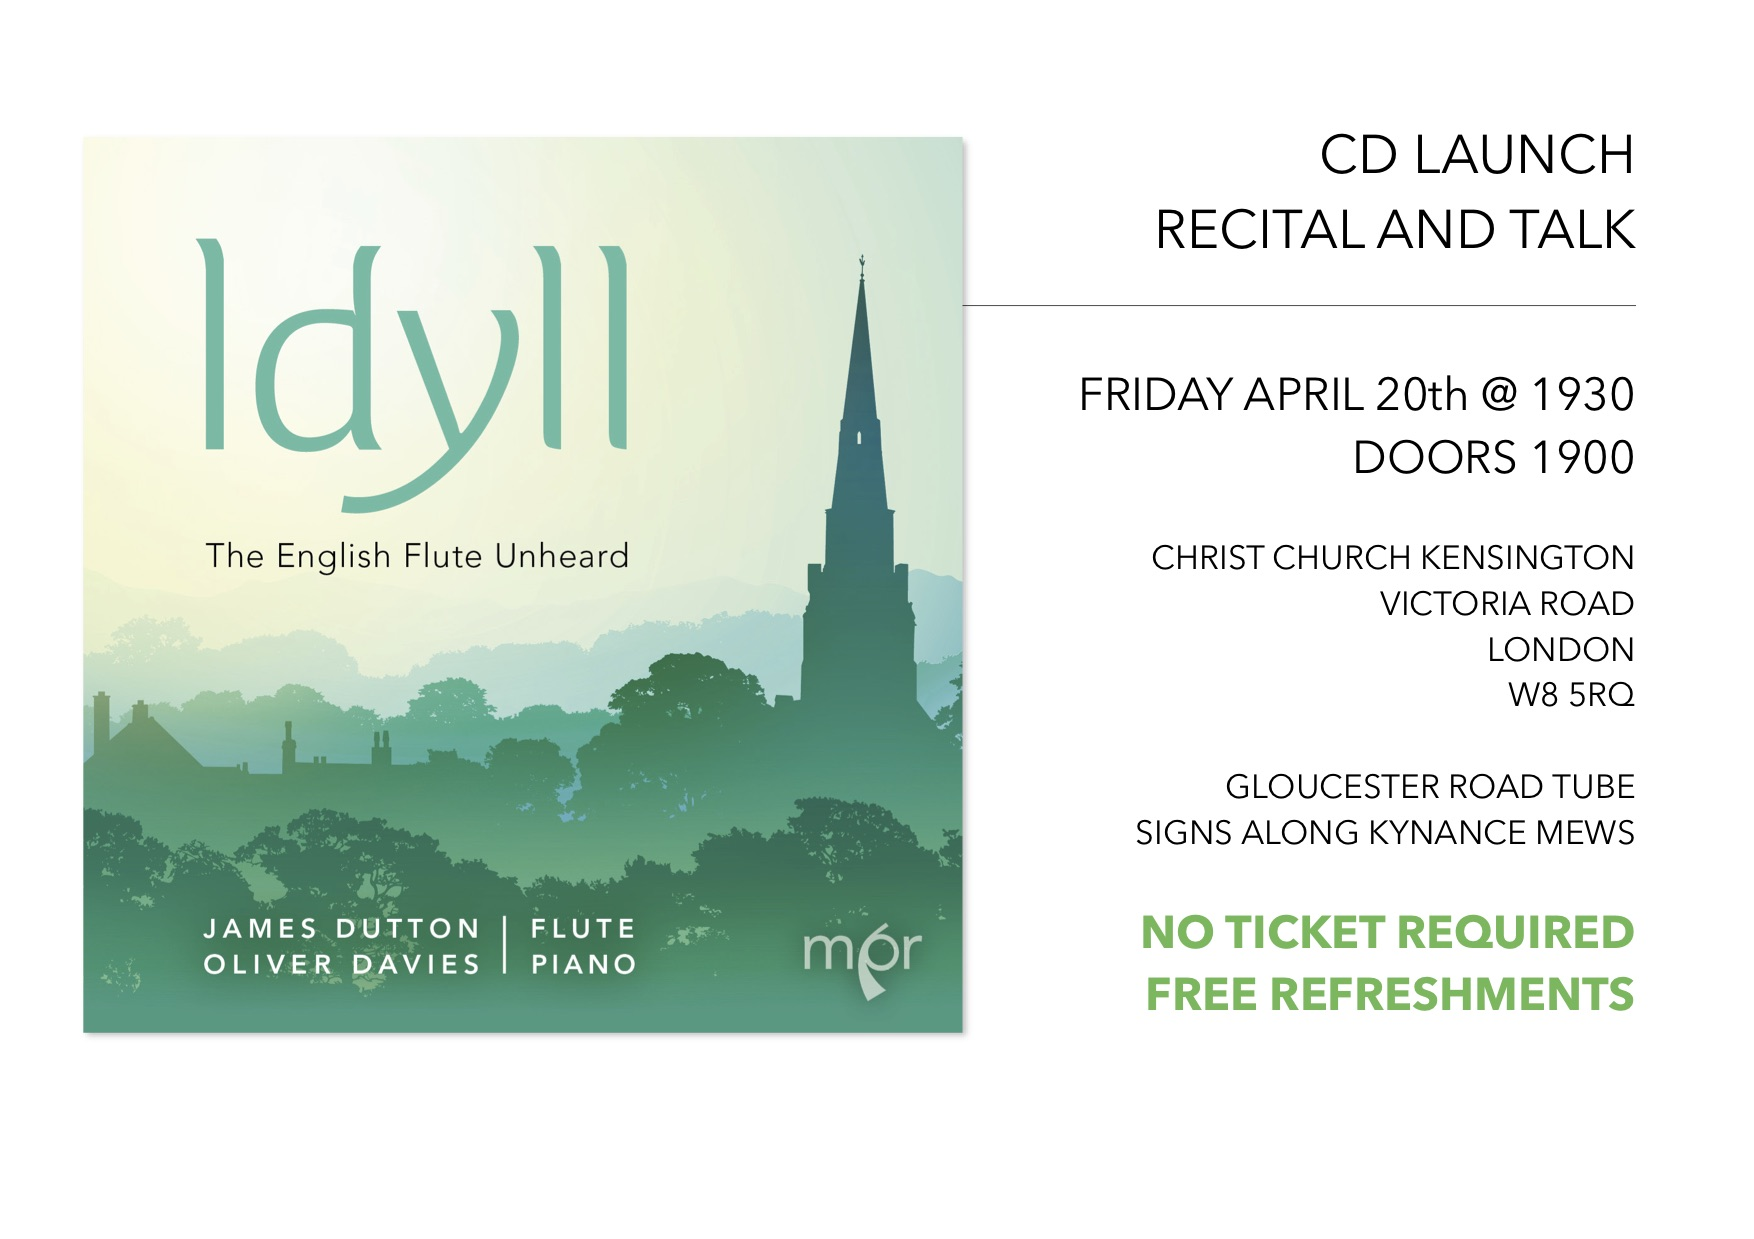 CD Launch and Concert on 20 April 2018